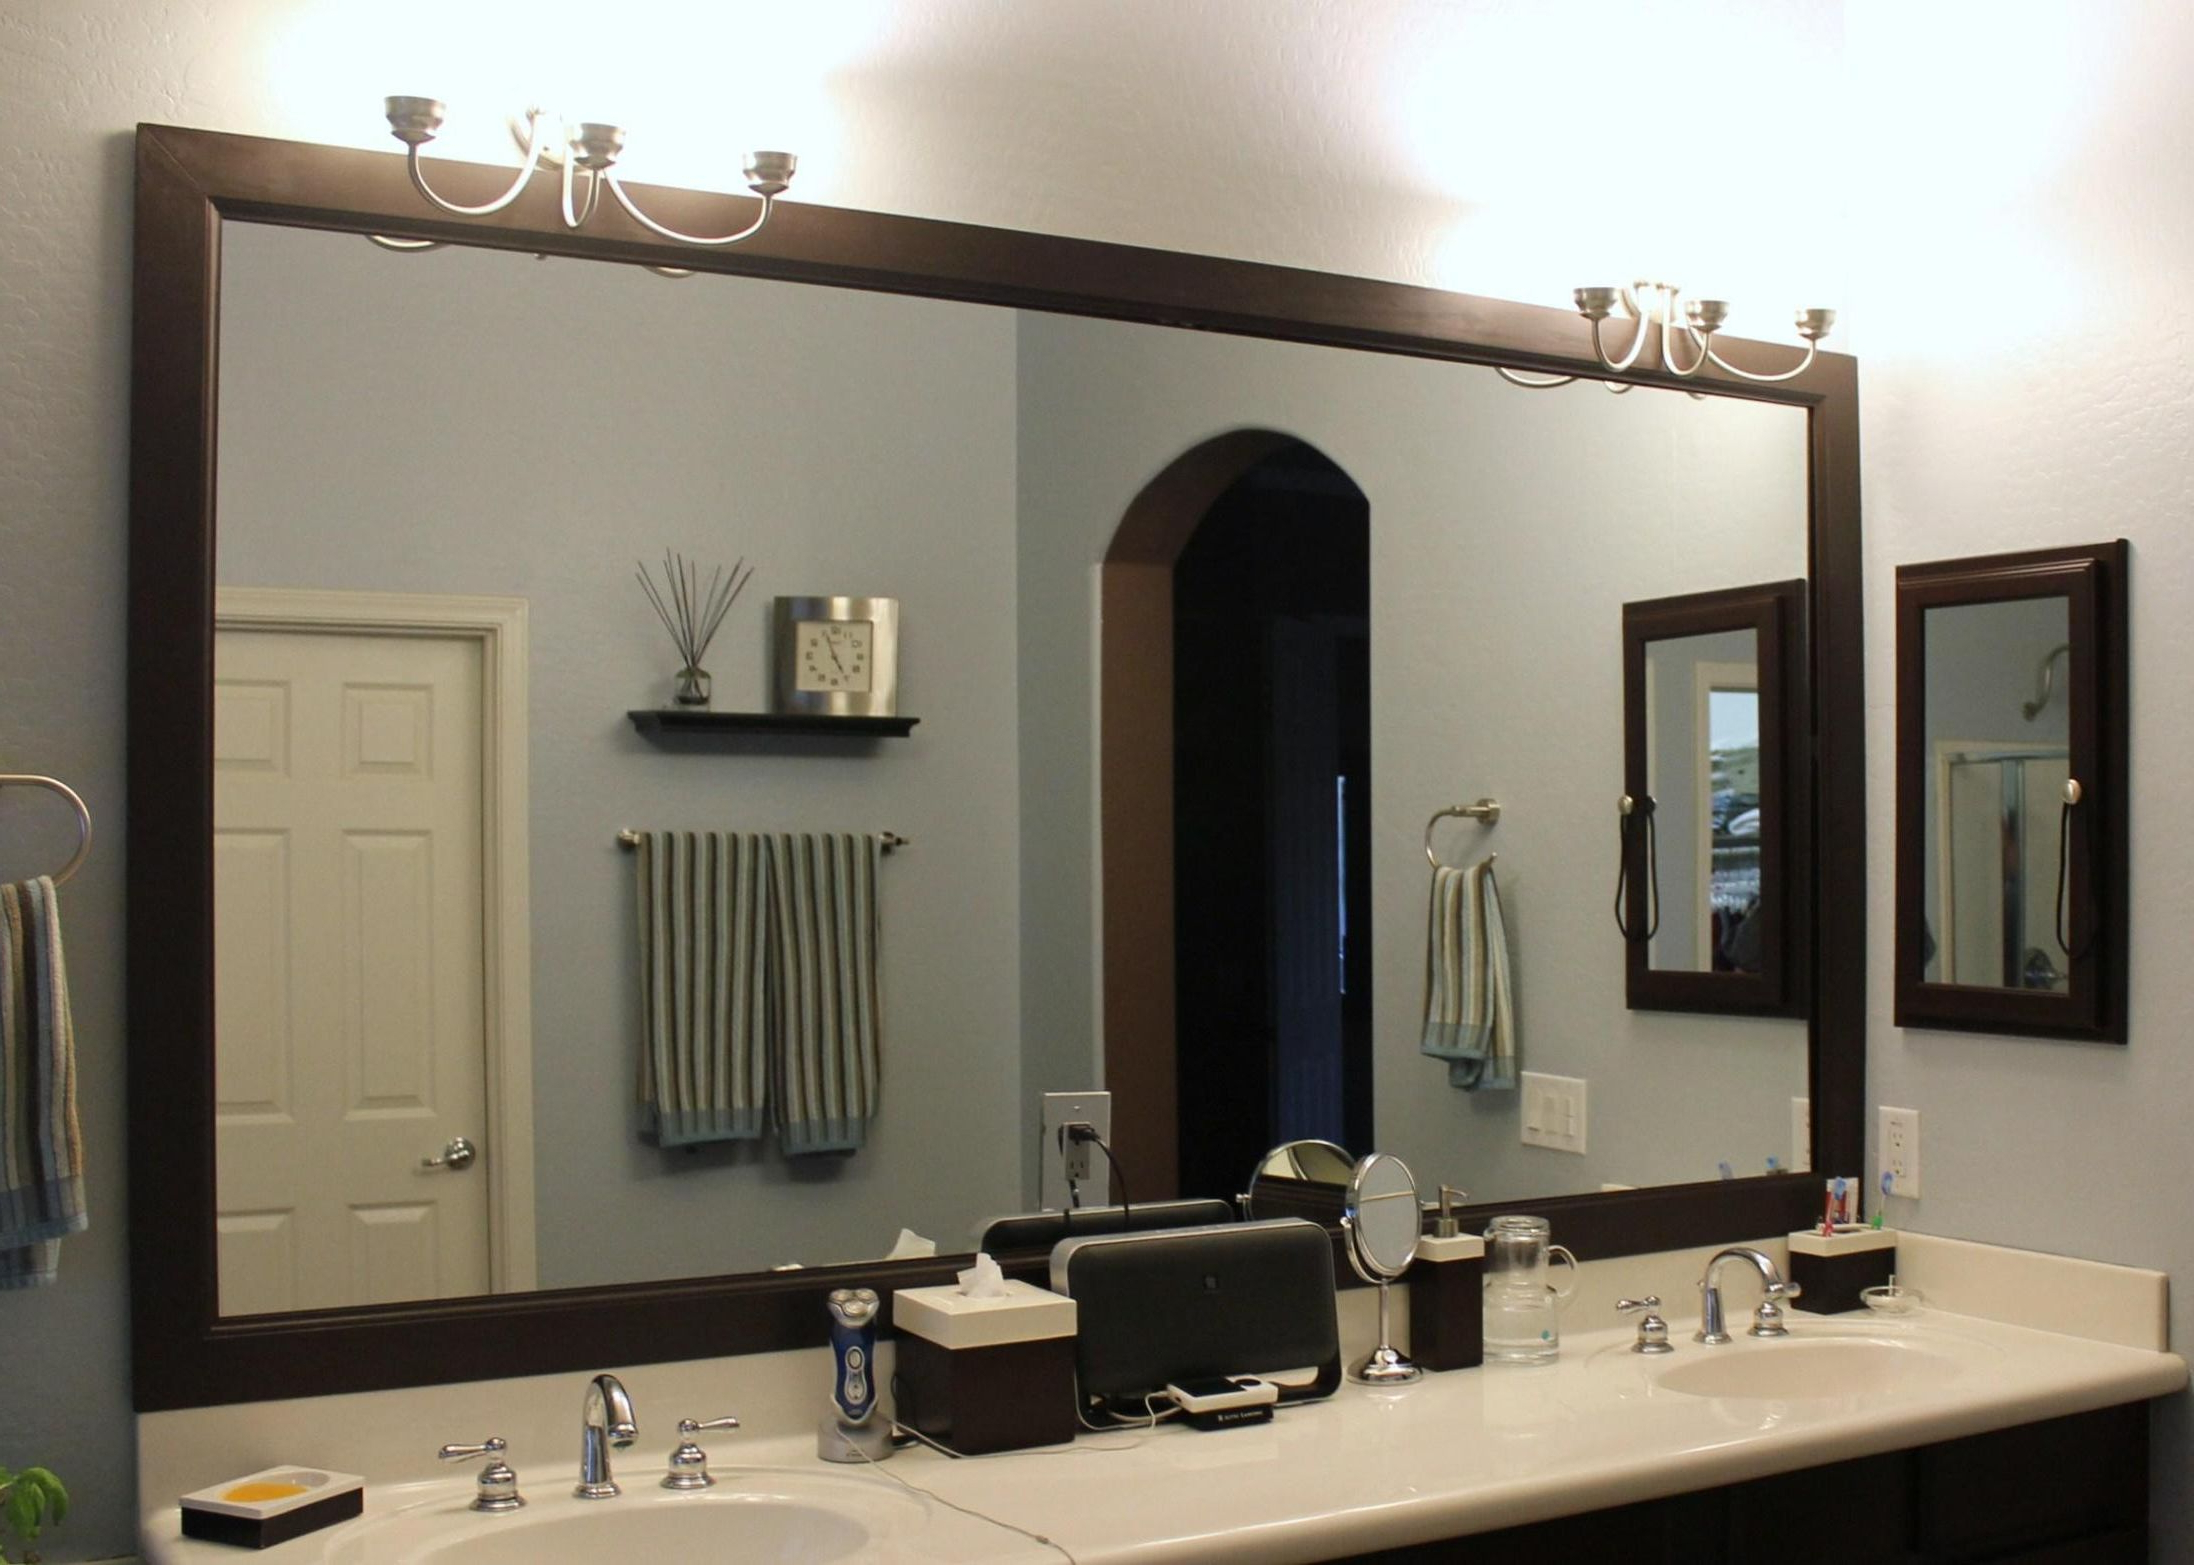 Frame Bathroom Wall Mirrors For Well Liked Engaging Wood Frame Ledge Round Wall Mirror Smoke Modern (View 9 of 20)